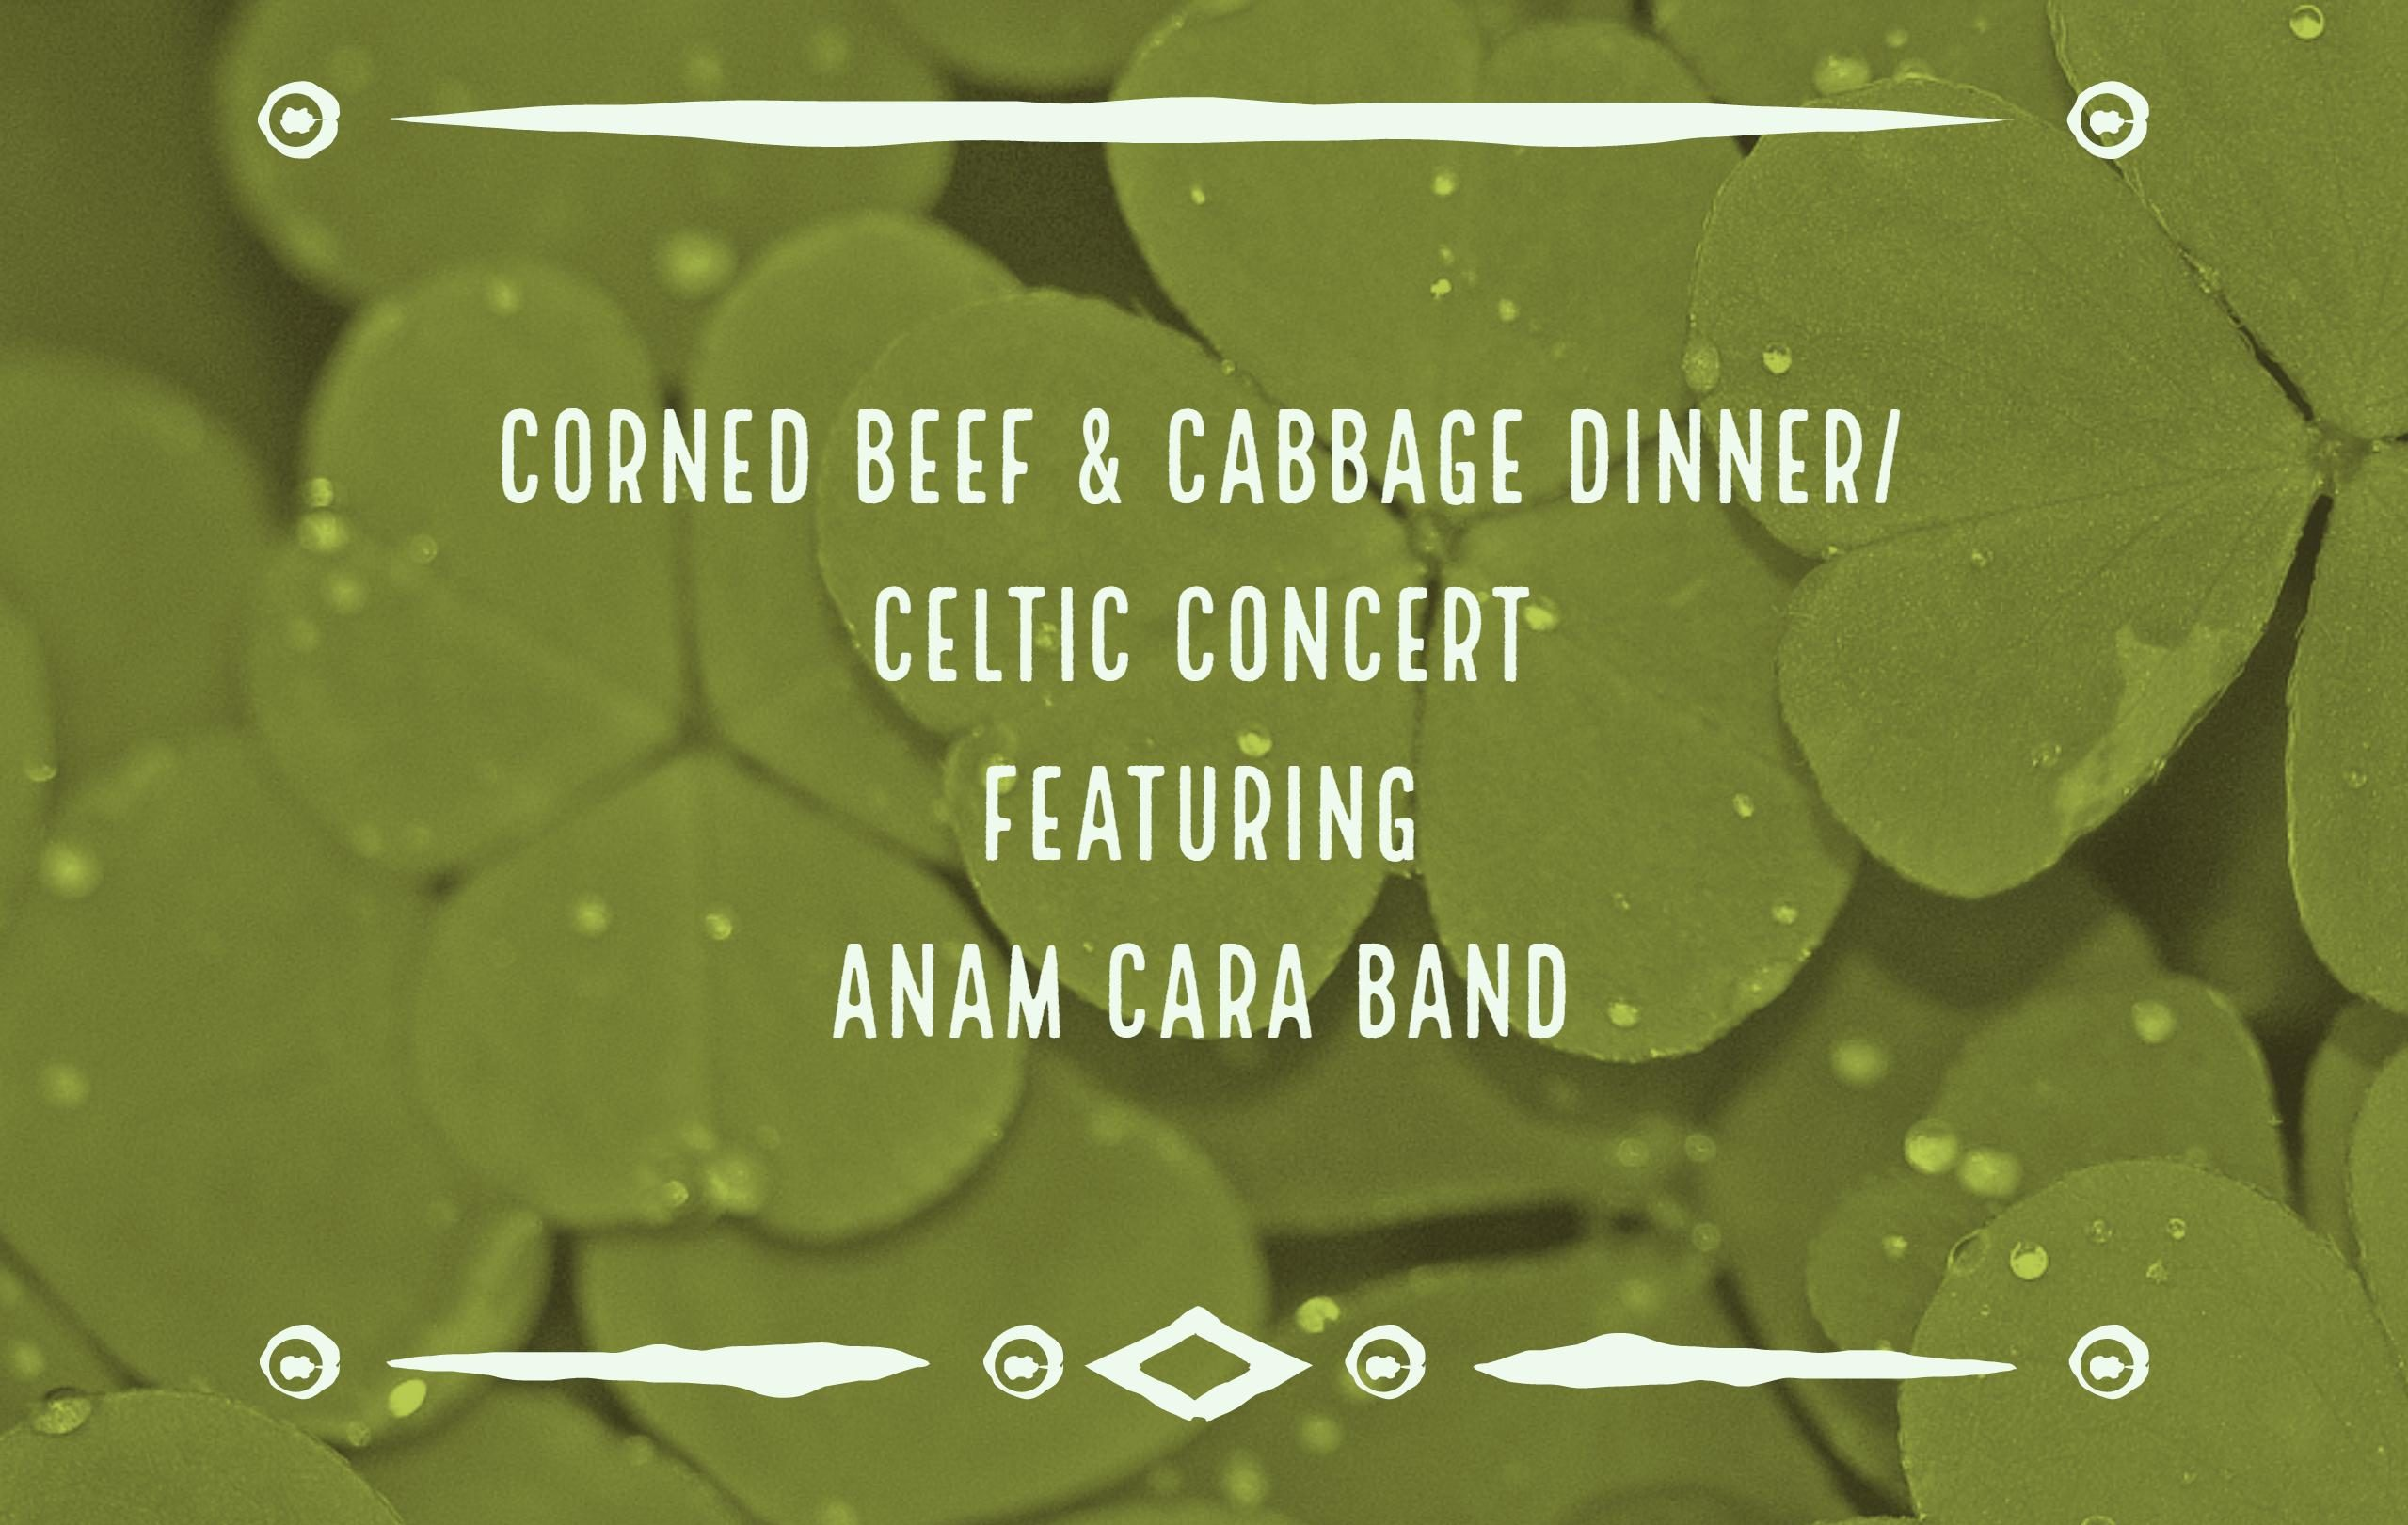 Corned Beef & Cabbage Dinner/Celtic Concert – March 18, 2017